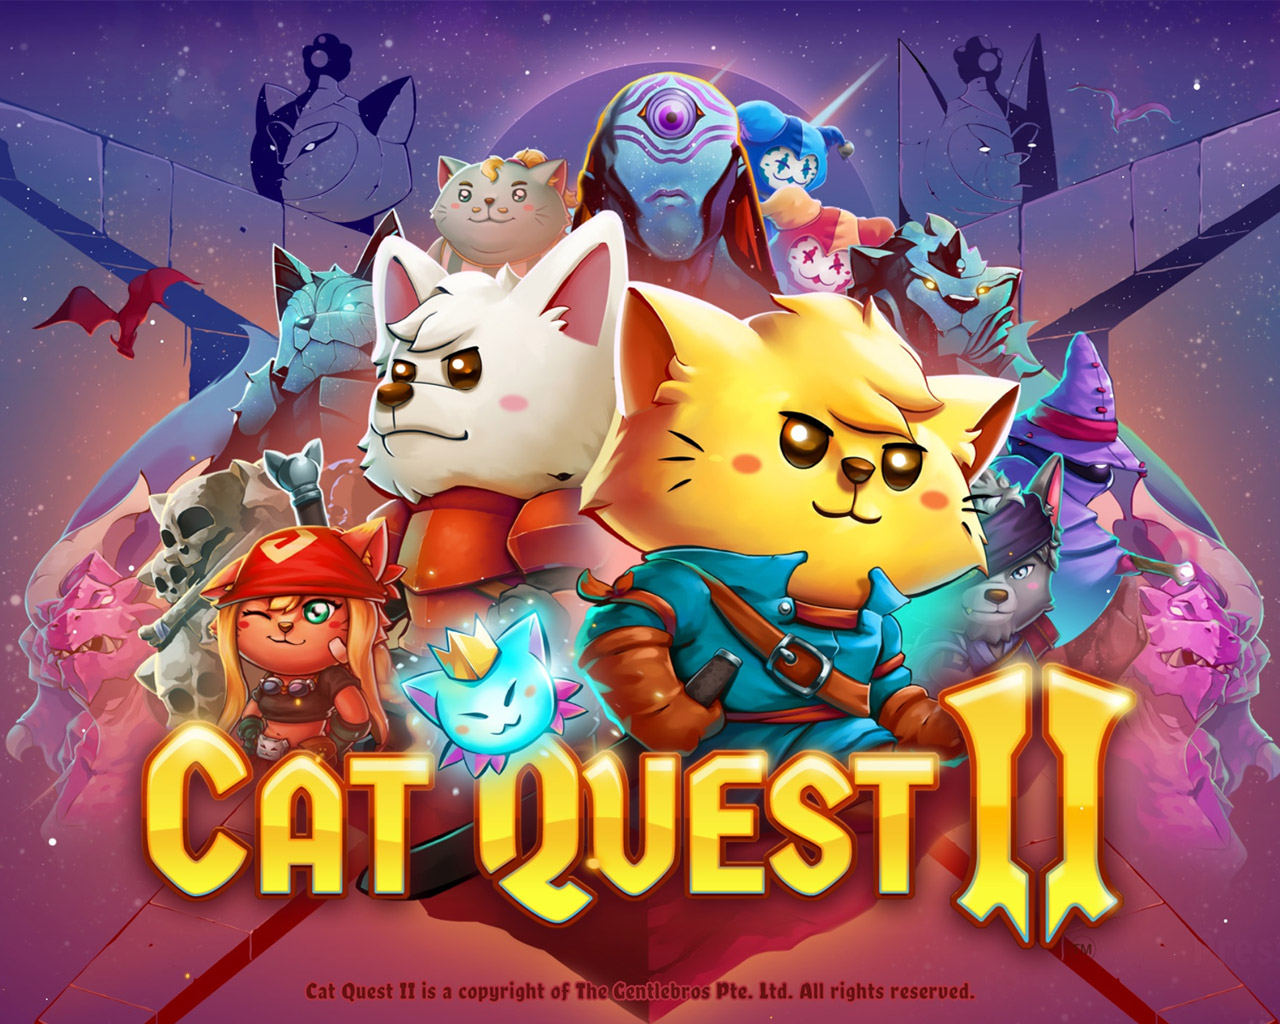 Cat Quest II Wallpaper in 1280x1024